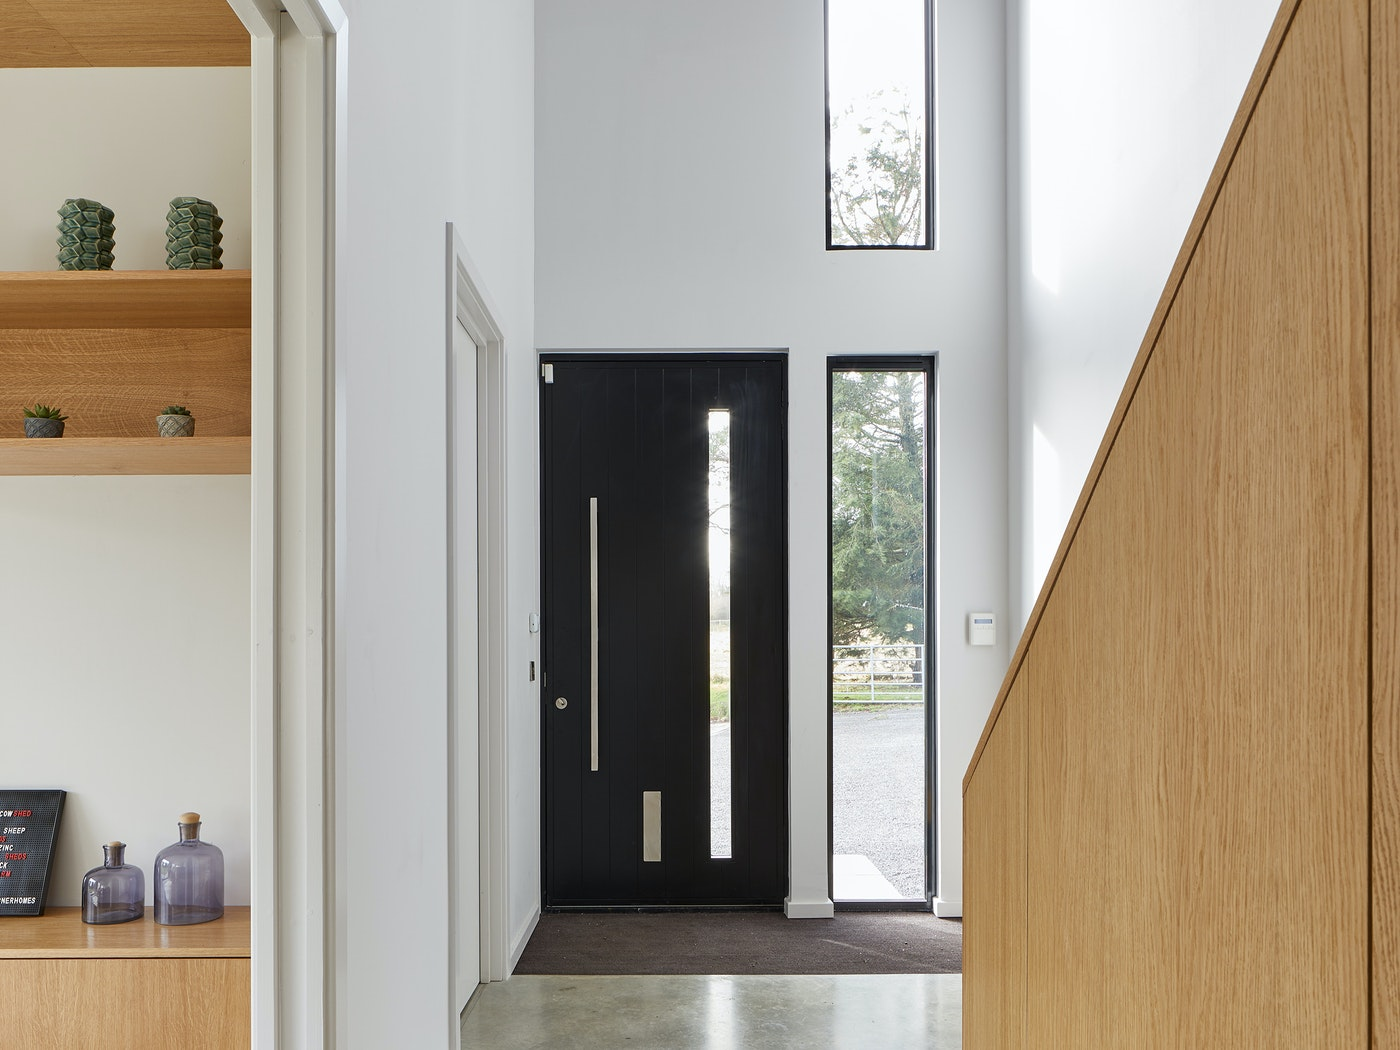 And inside the modern black door sits in a fresh hallway with ample light provided by the door's glass panel & additional windows